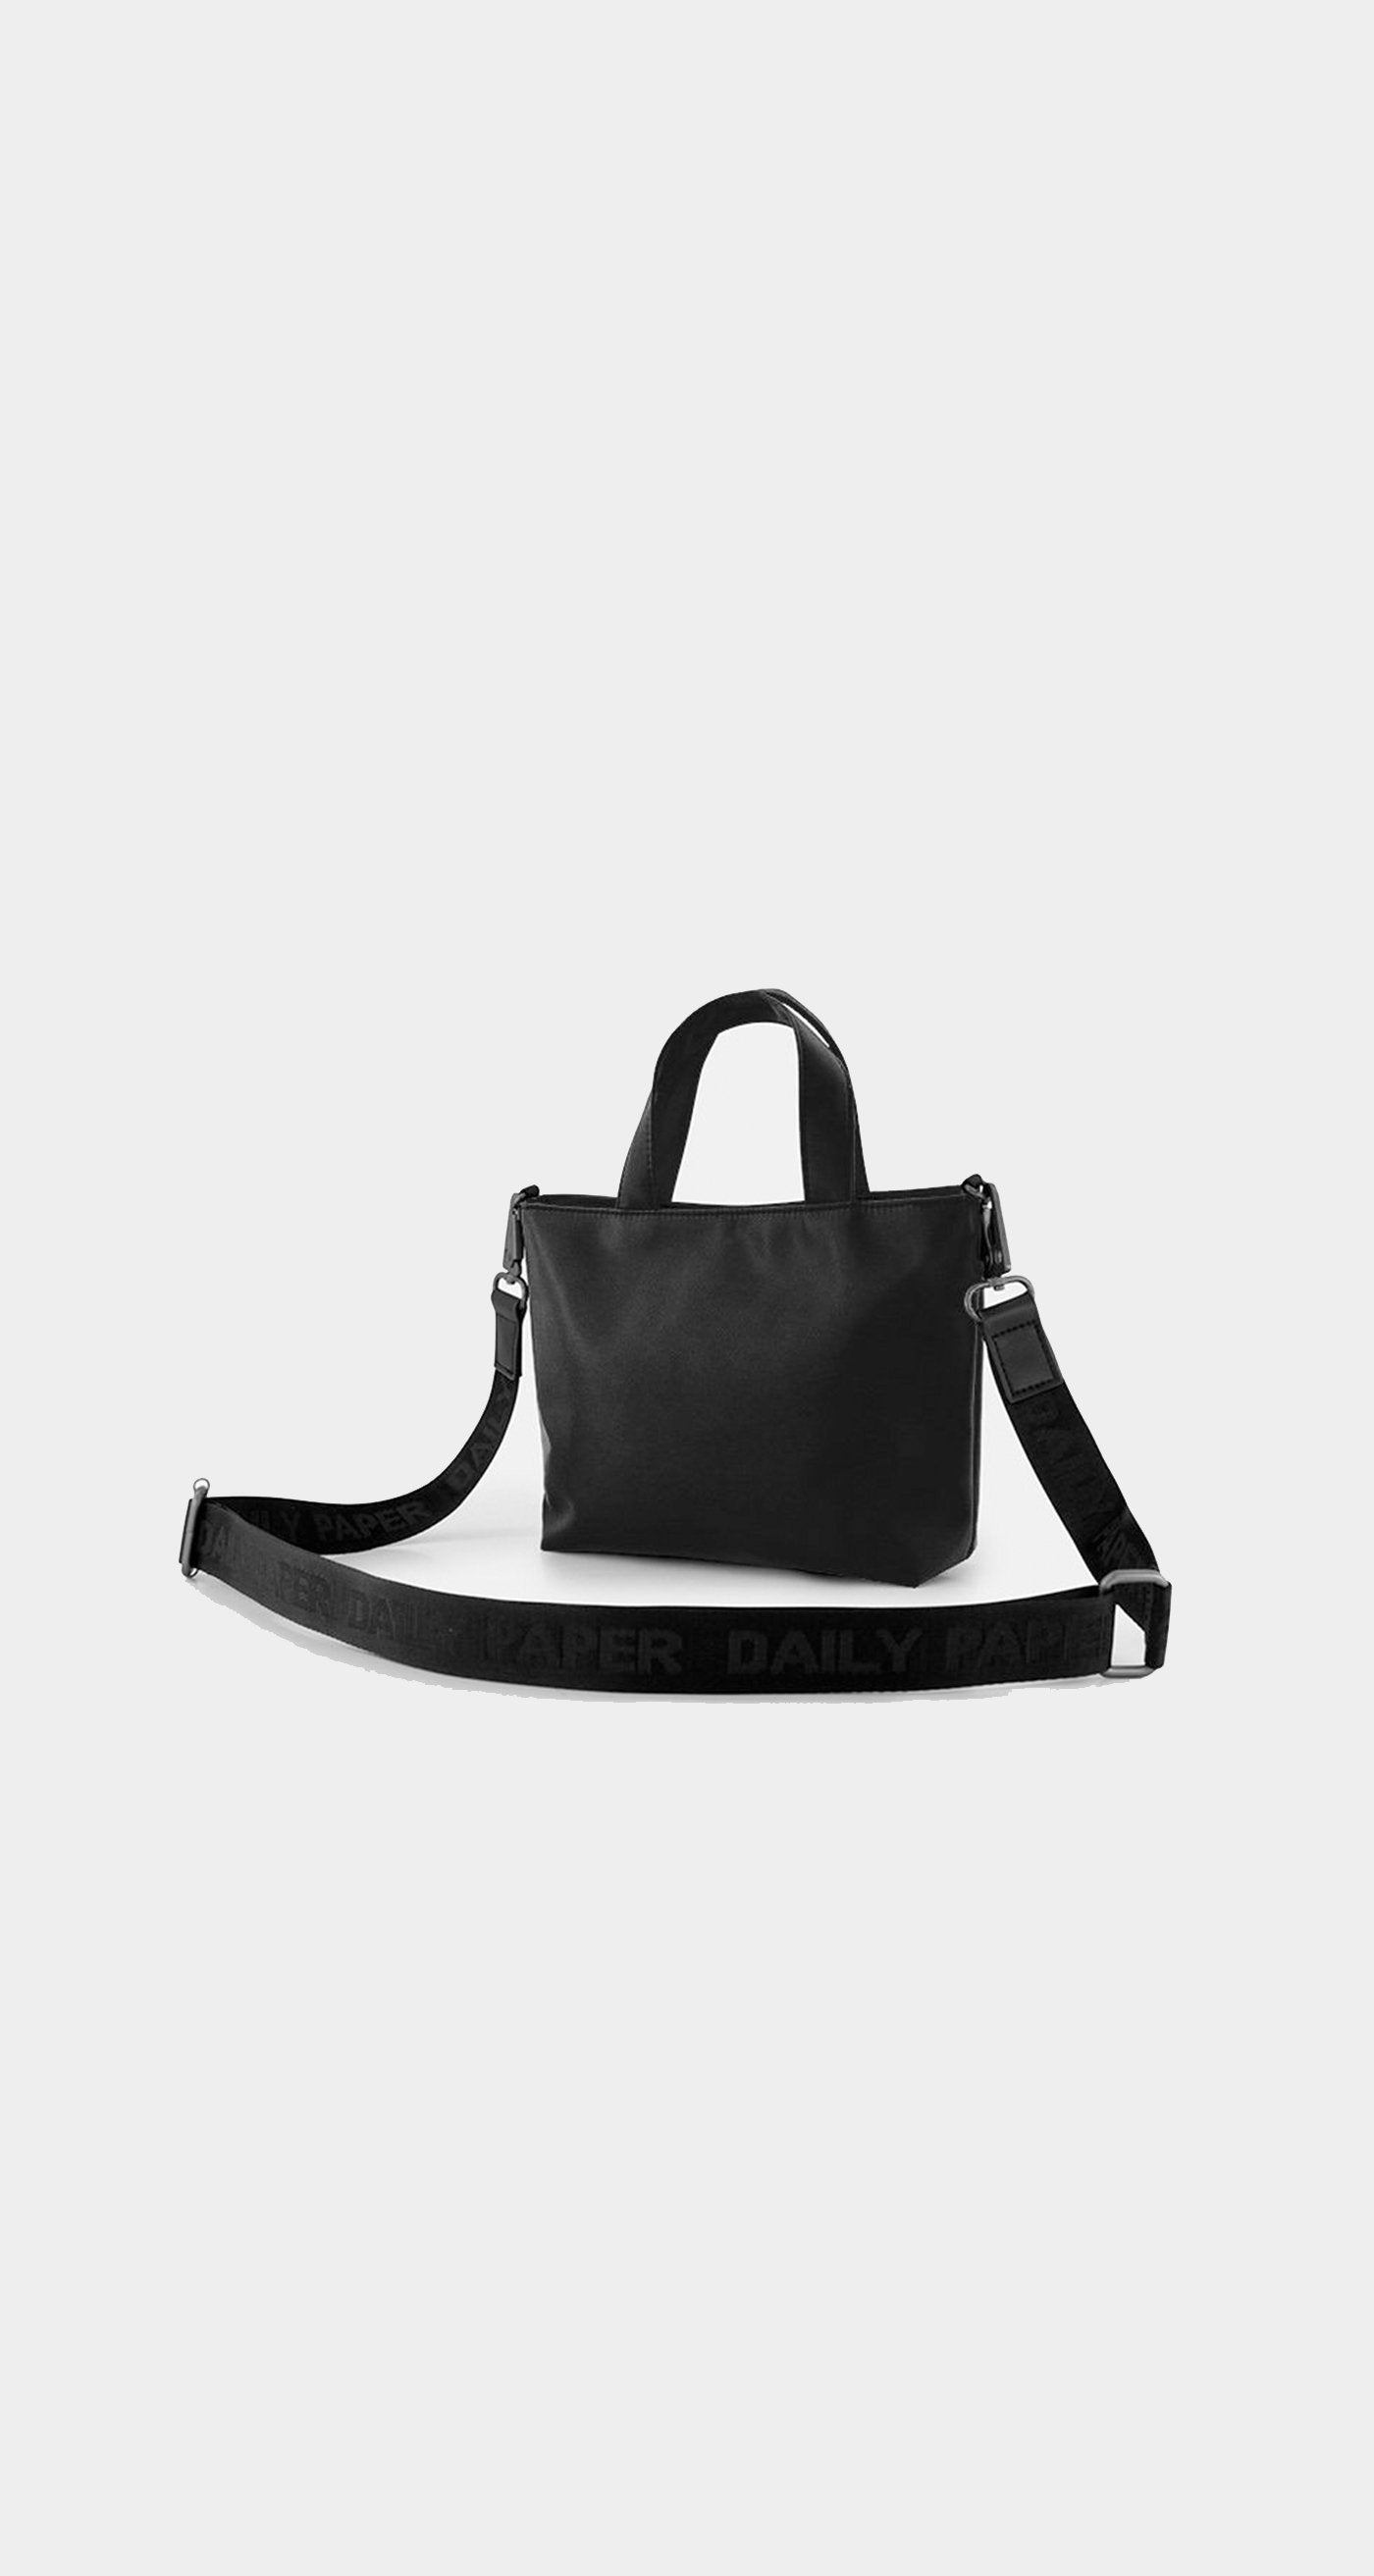 Daily Paper - Black Etiny Bag - Rear